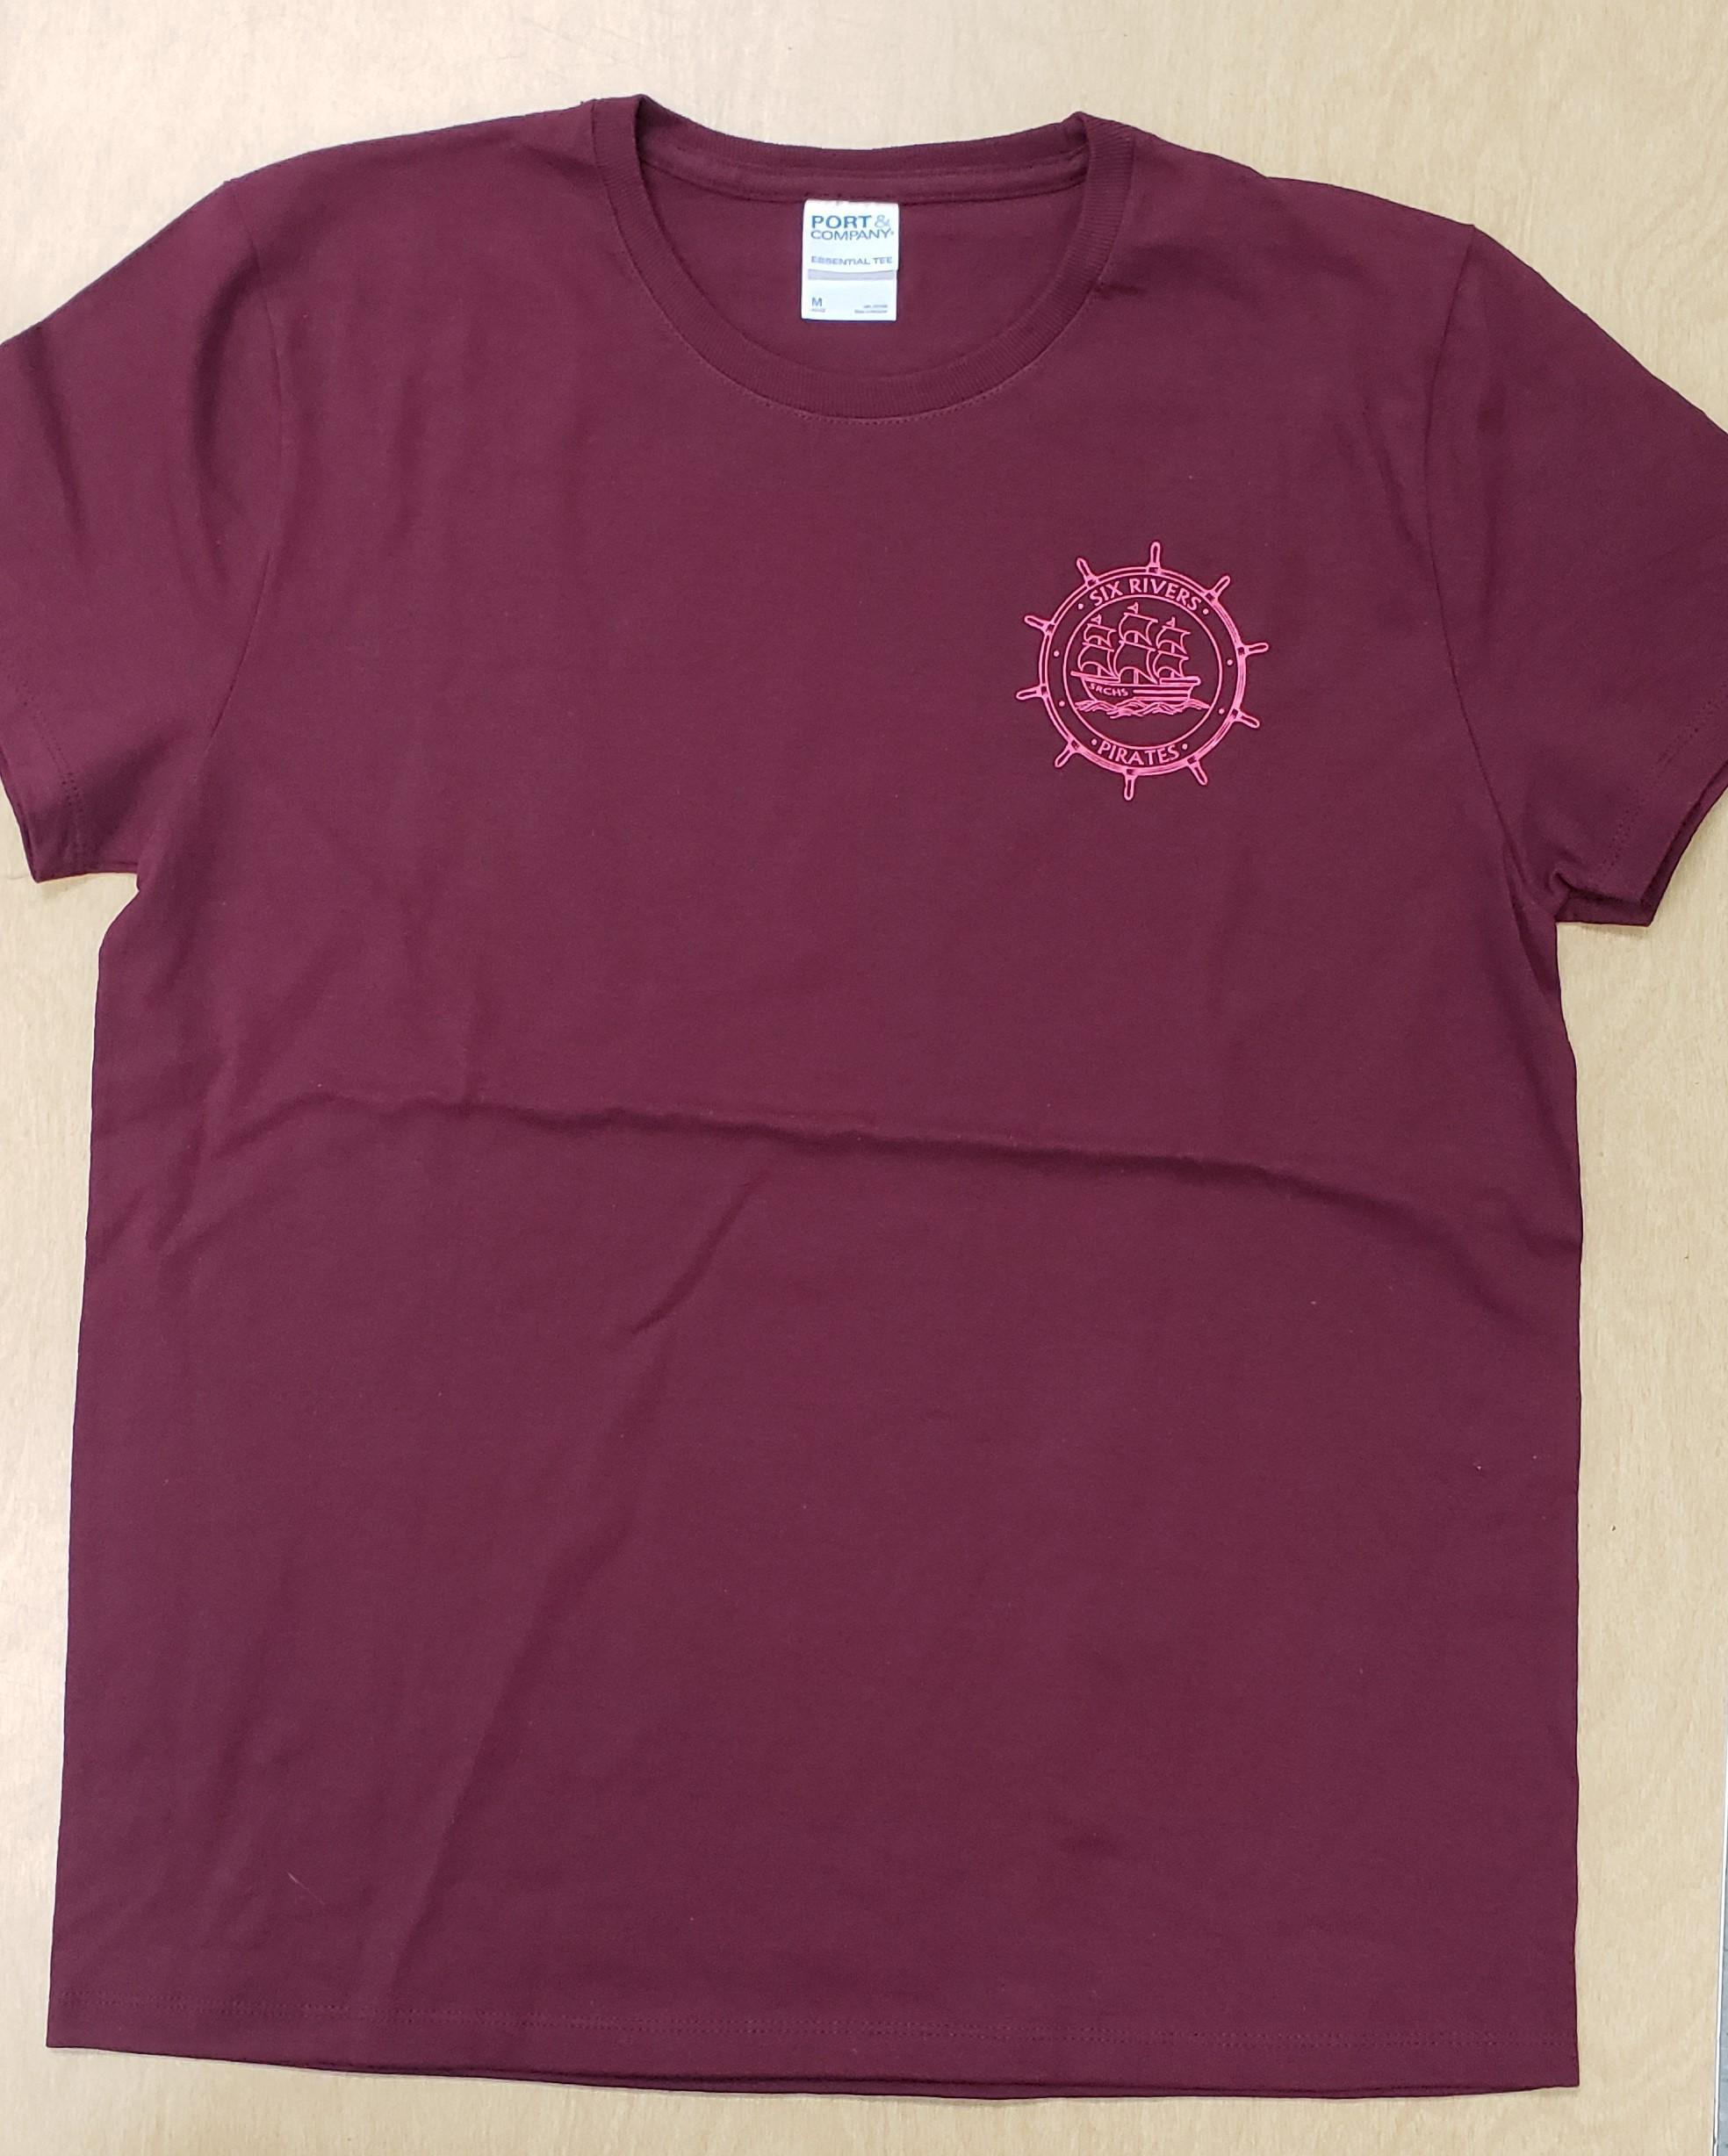 Maroon Shirt, Pink Logo - Women's Small - Front Side